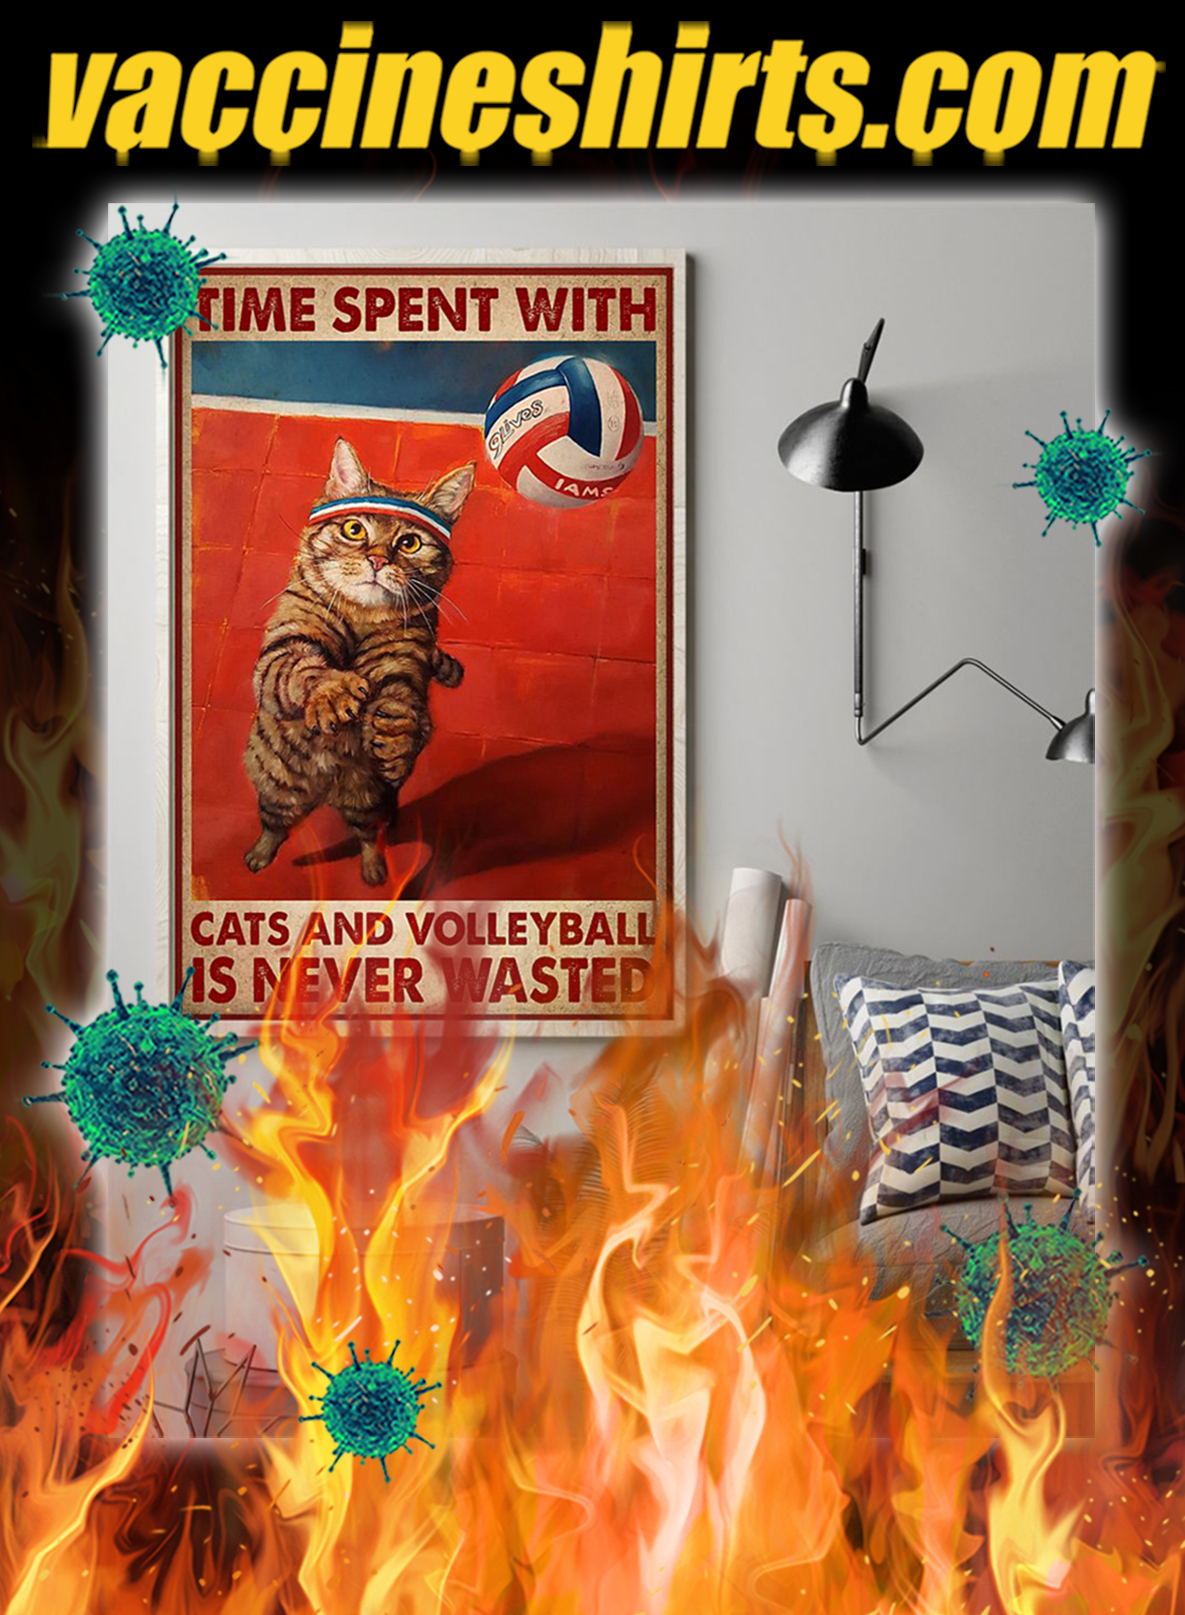 Time spent with cats and volleyball is never wasted poster- A2